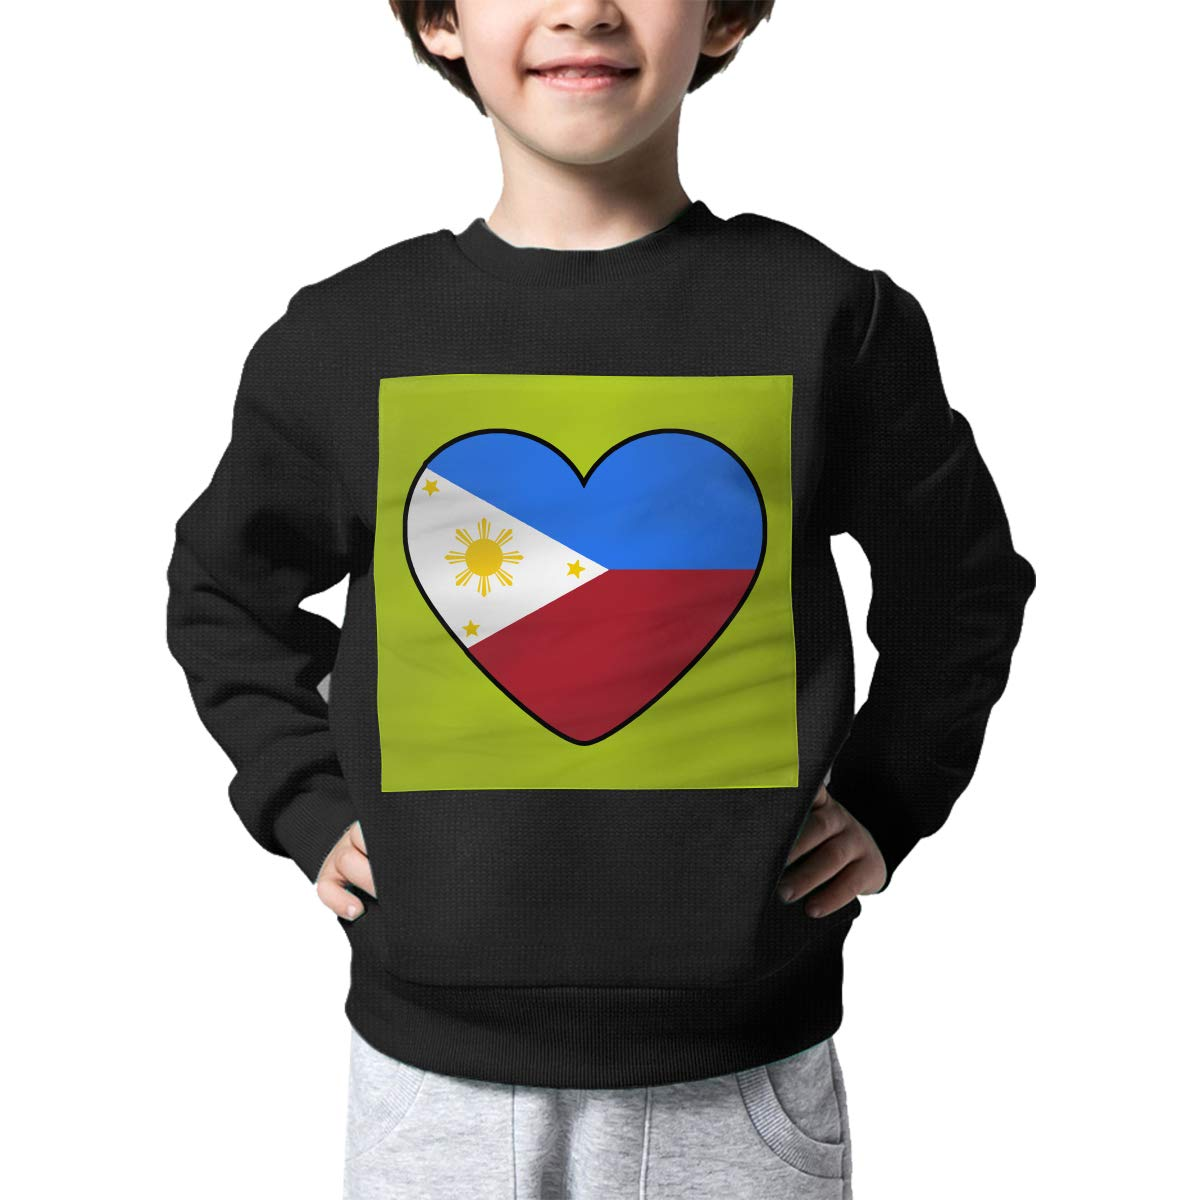 AW-KOCP Childrens Philippines Flag Heart99 Sweater Boys Girls Printed Sweater